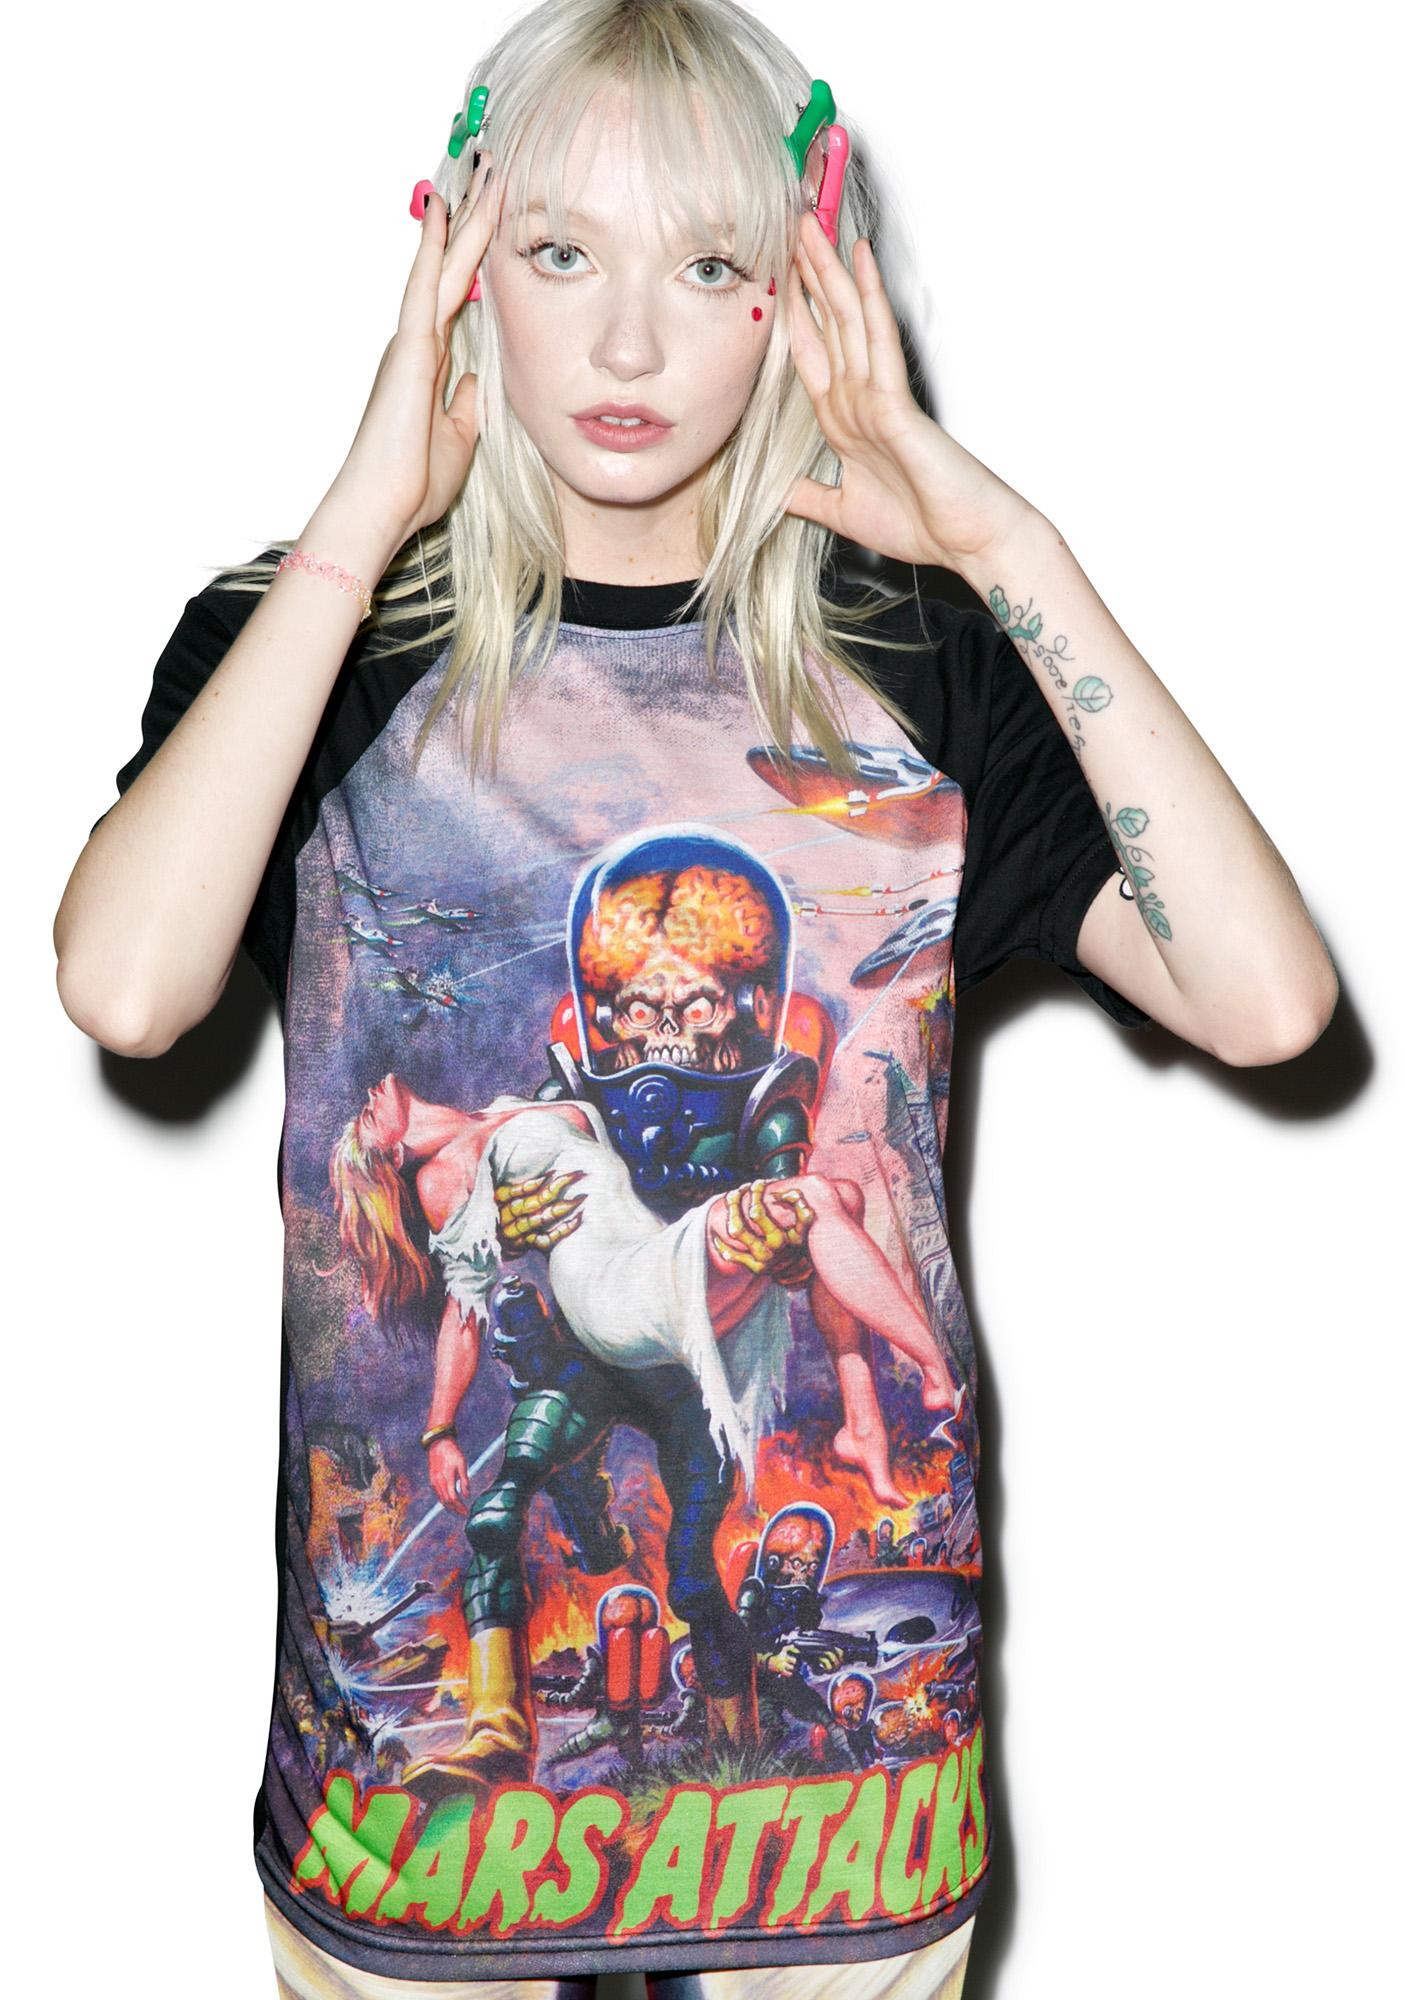 Kreepsville 666 Mars Attacks B Movie Babe Tee